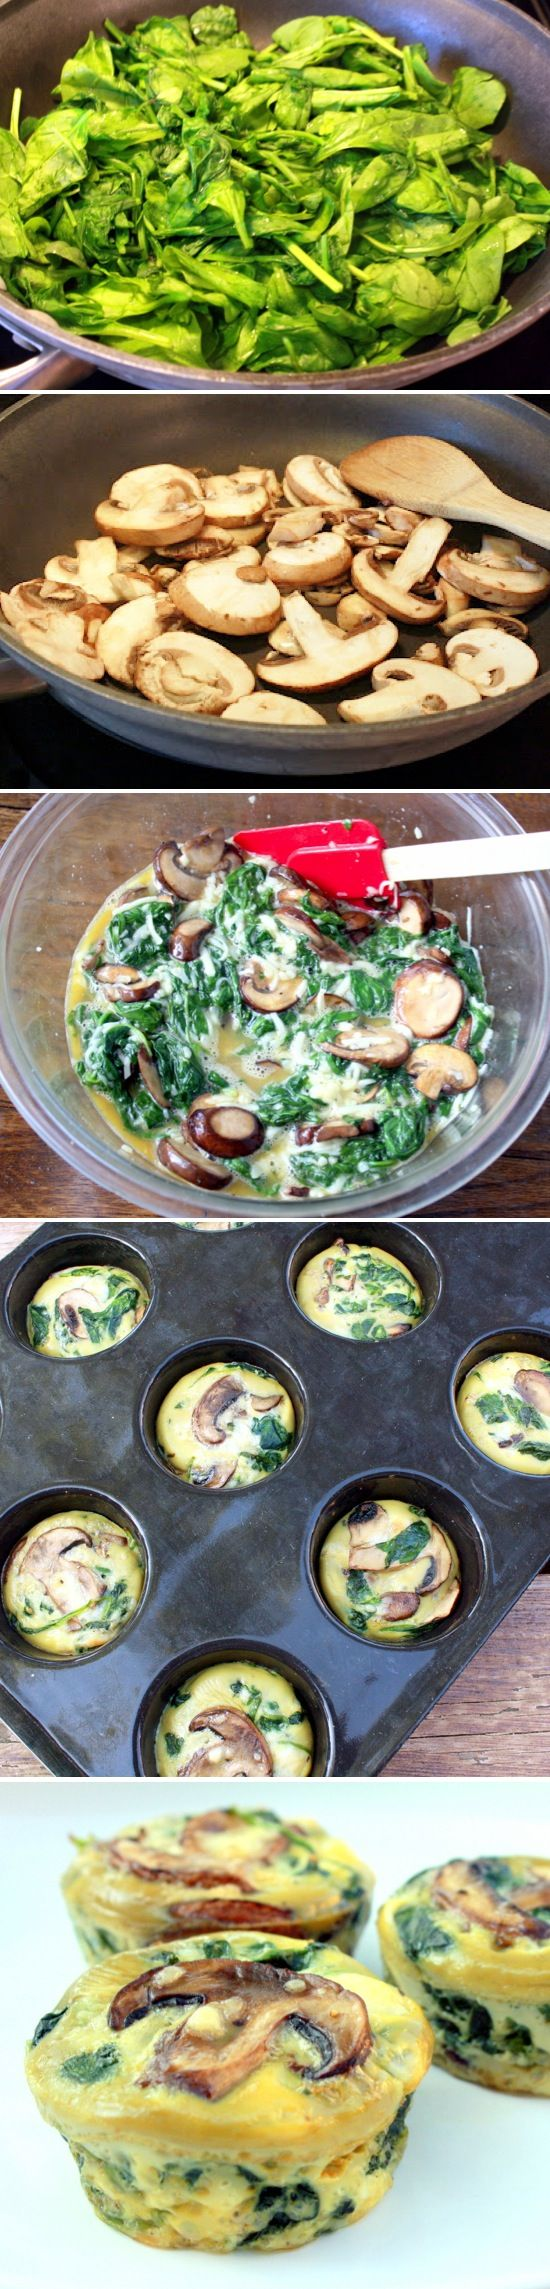 Spinach Quiche Cups: 10oz spinach, mushrooms, 4-5 eggs, 1 cup shredded cheese. 375 for 20-23 min